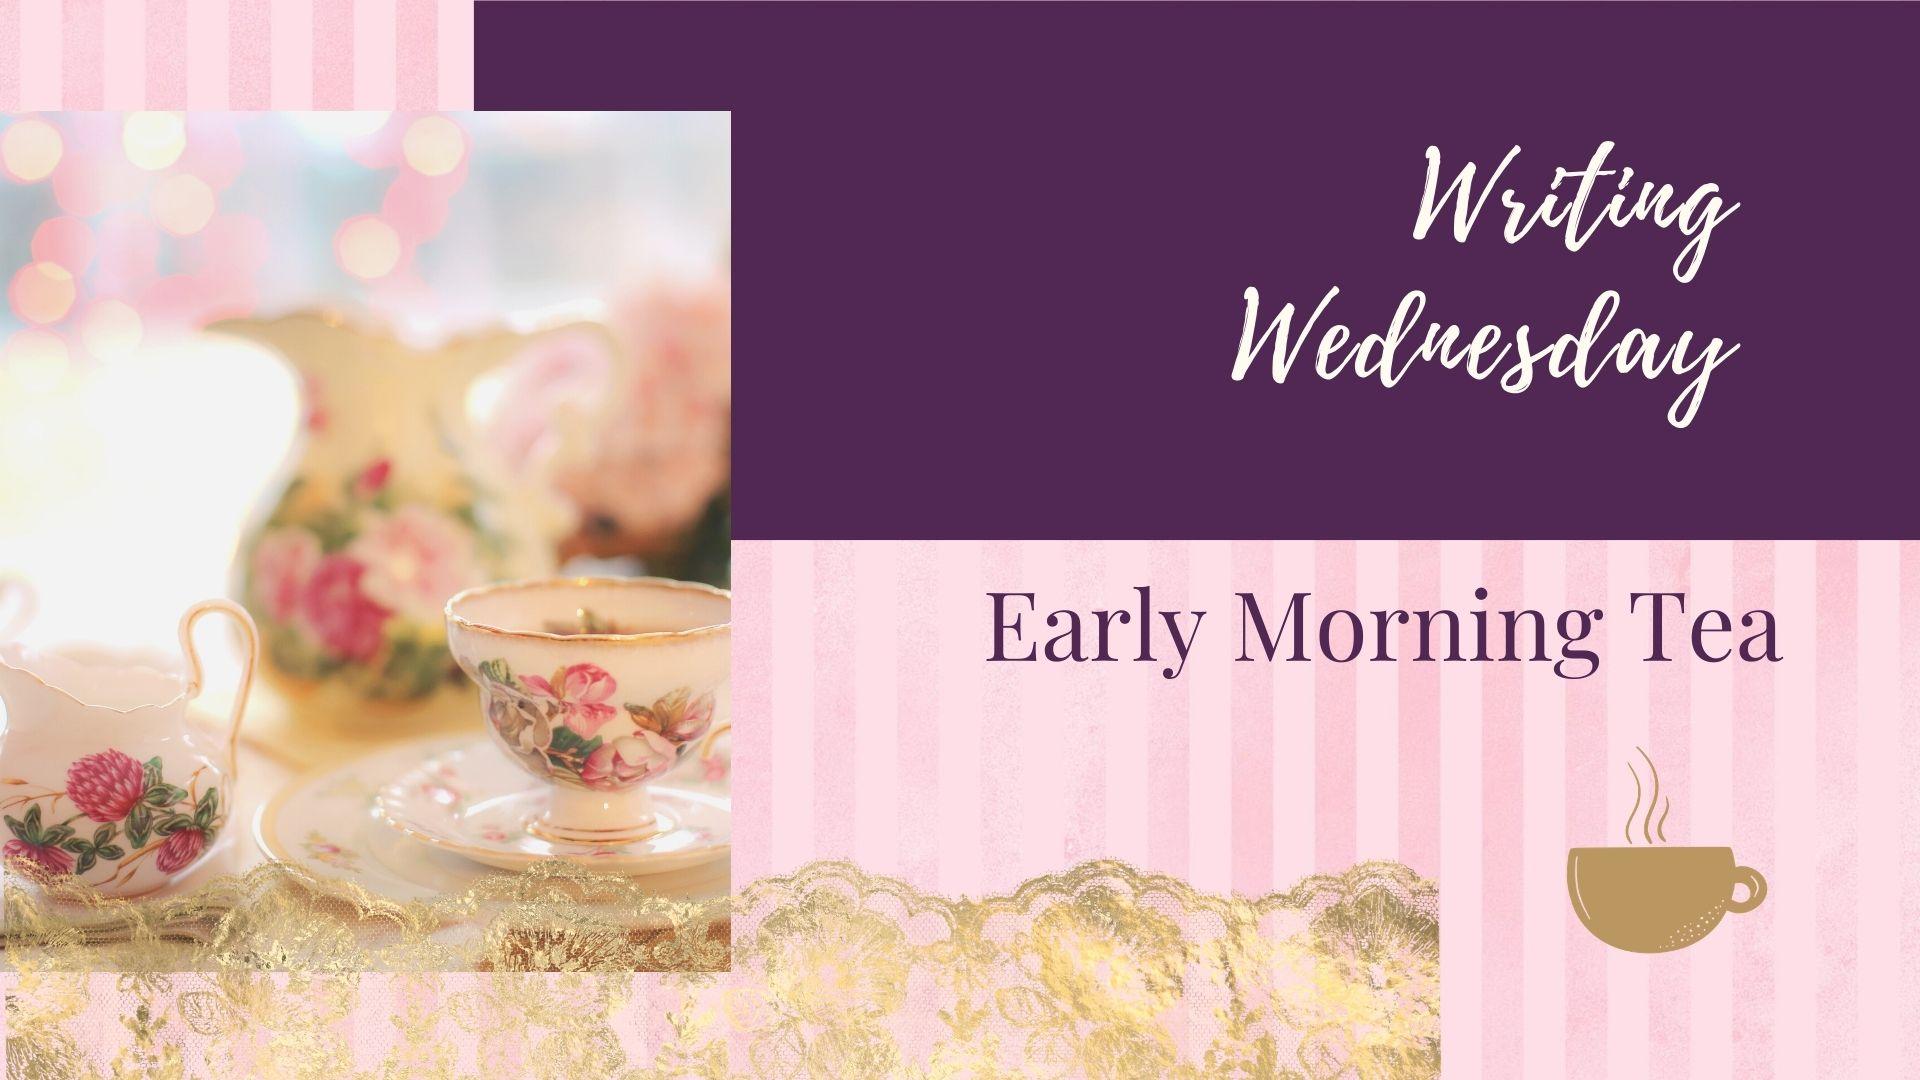 Writing Wednesday: Early Morning Tea